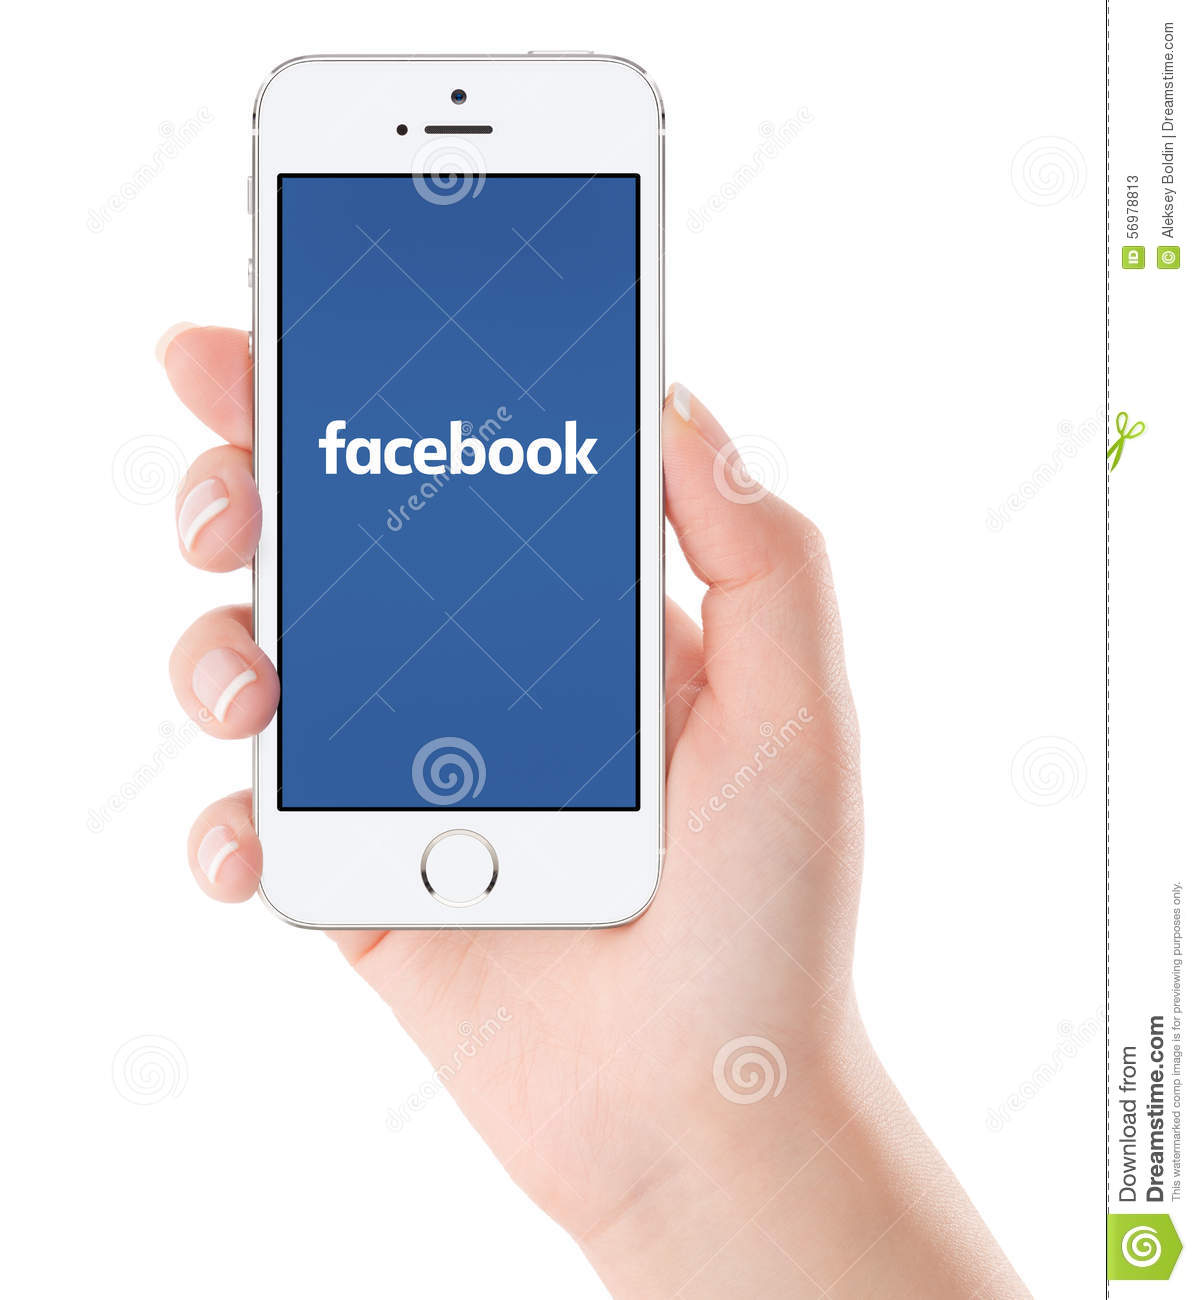 facebook logo on white apple iphone 5s display in female